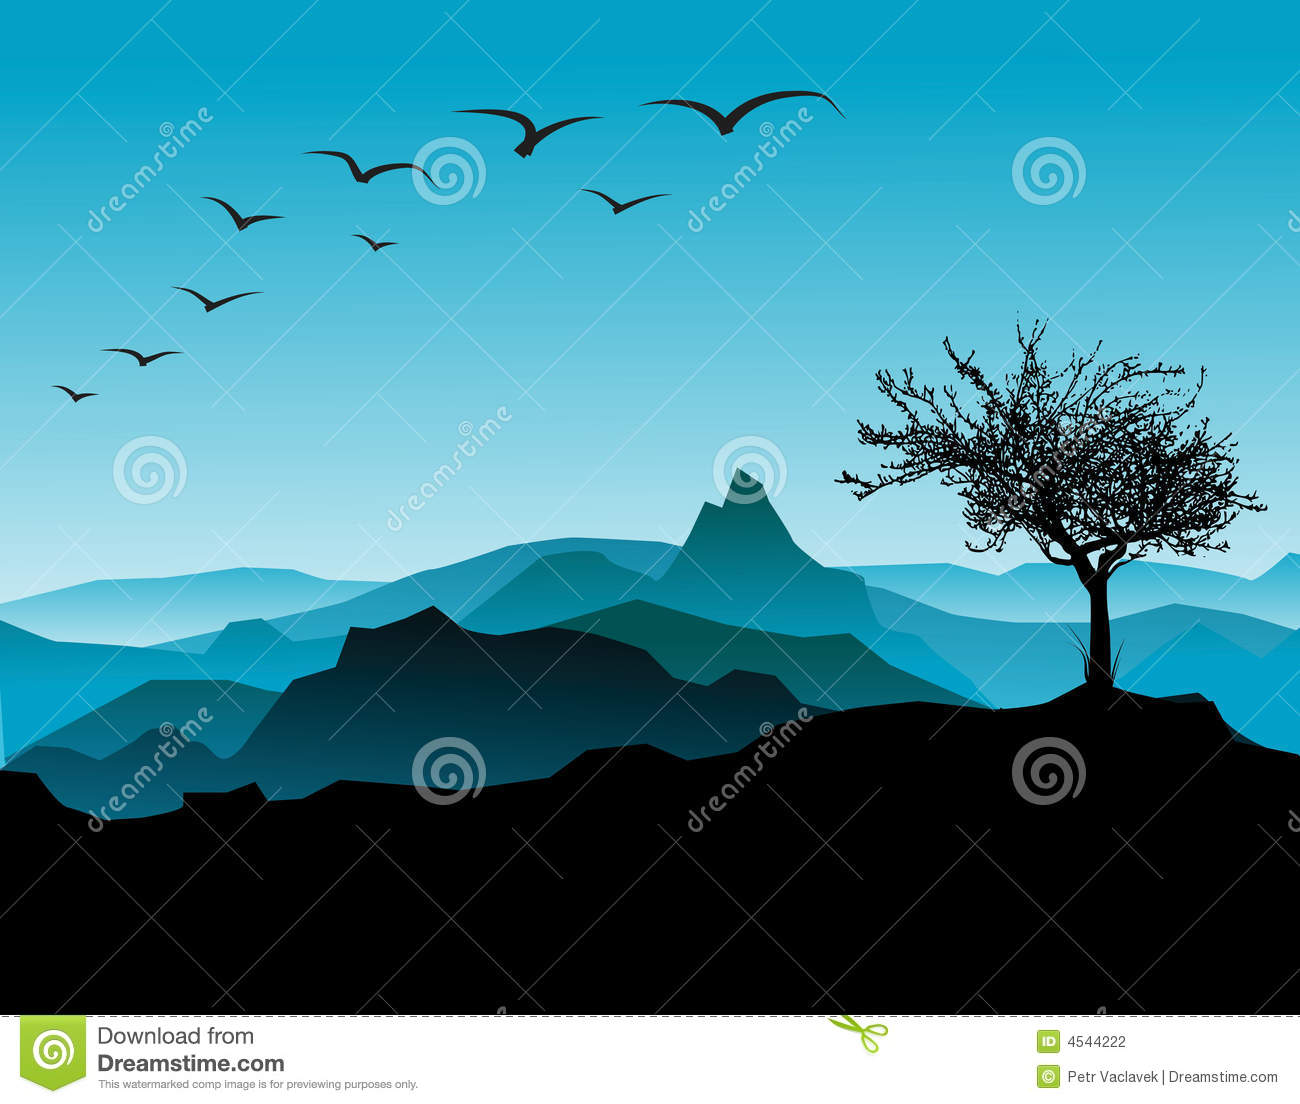 Silhouette of the tree with mountains in the background